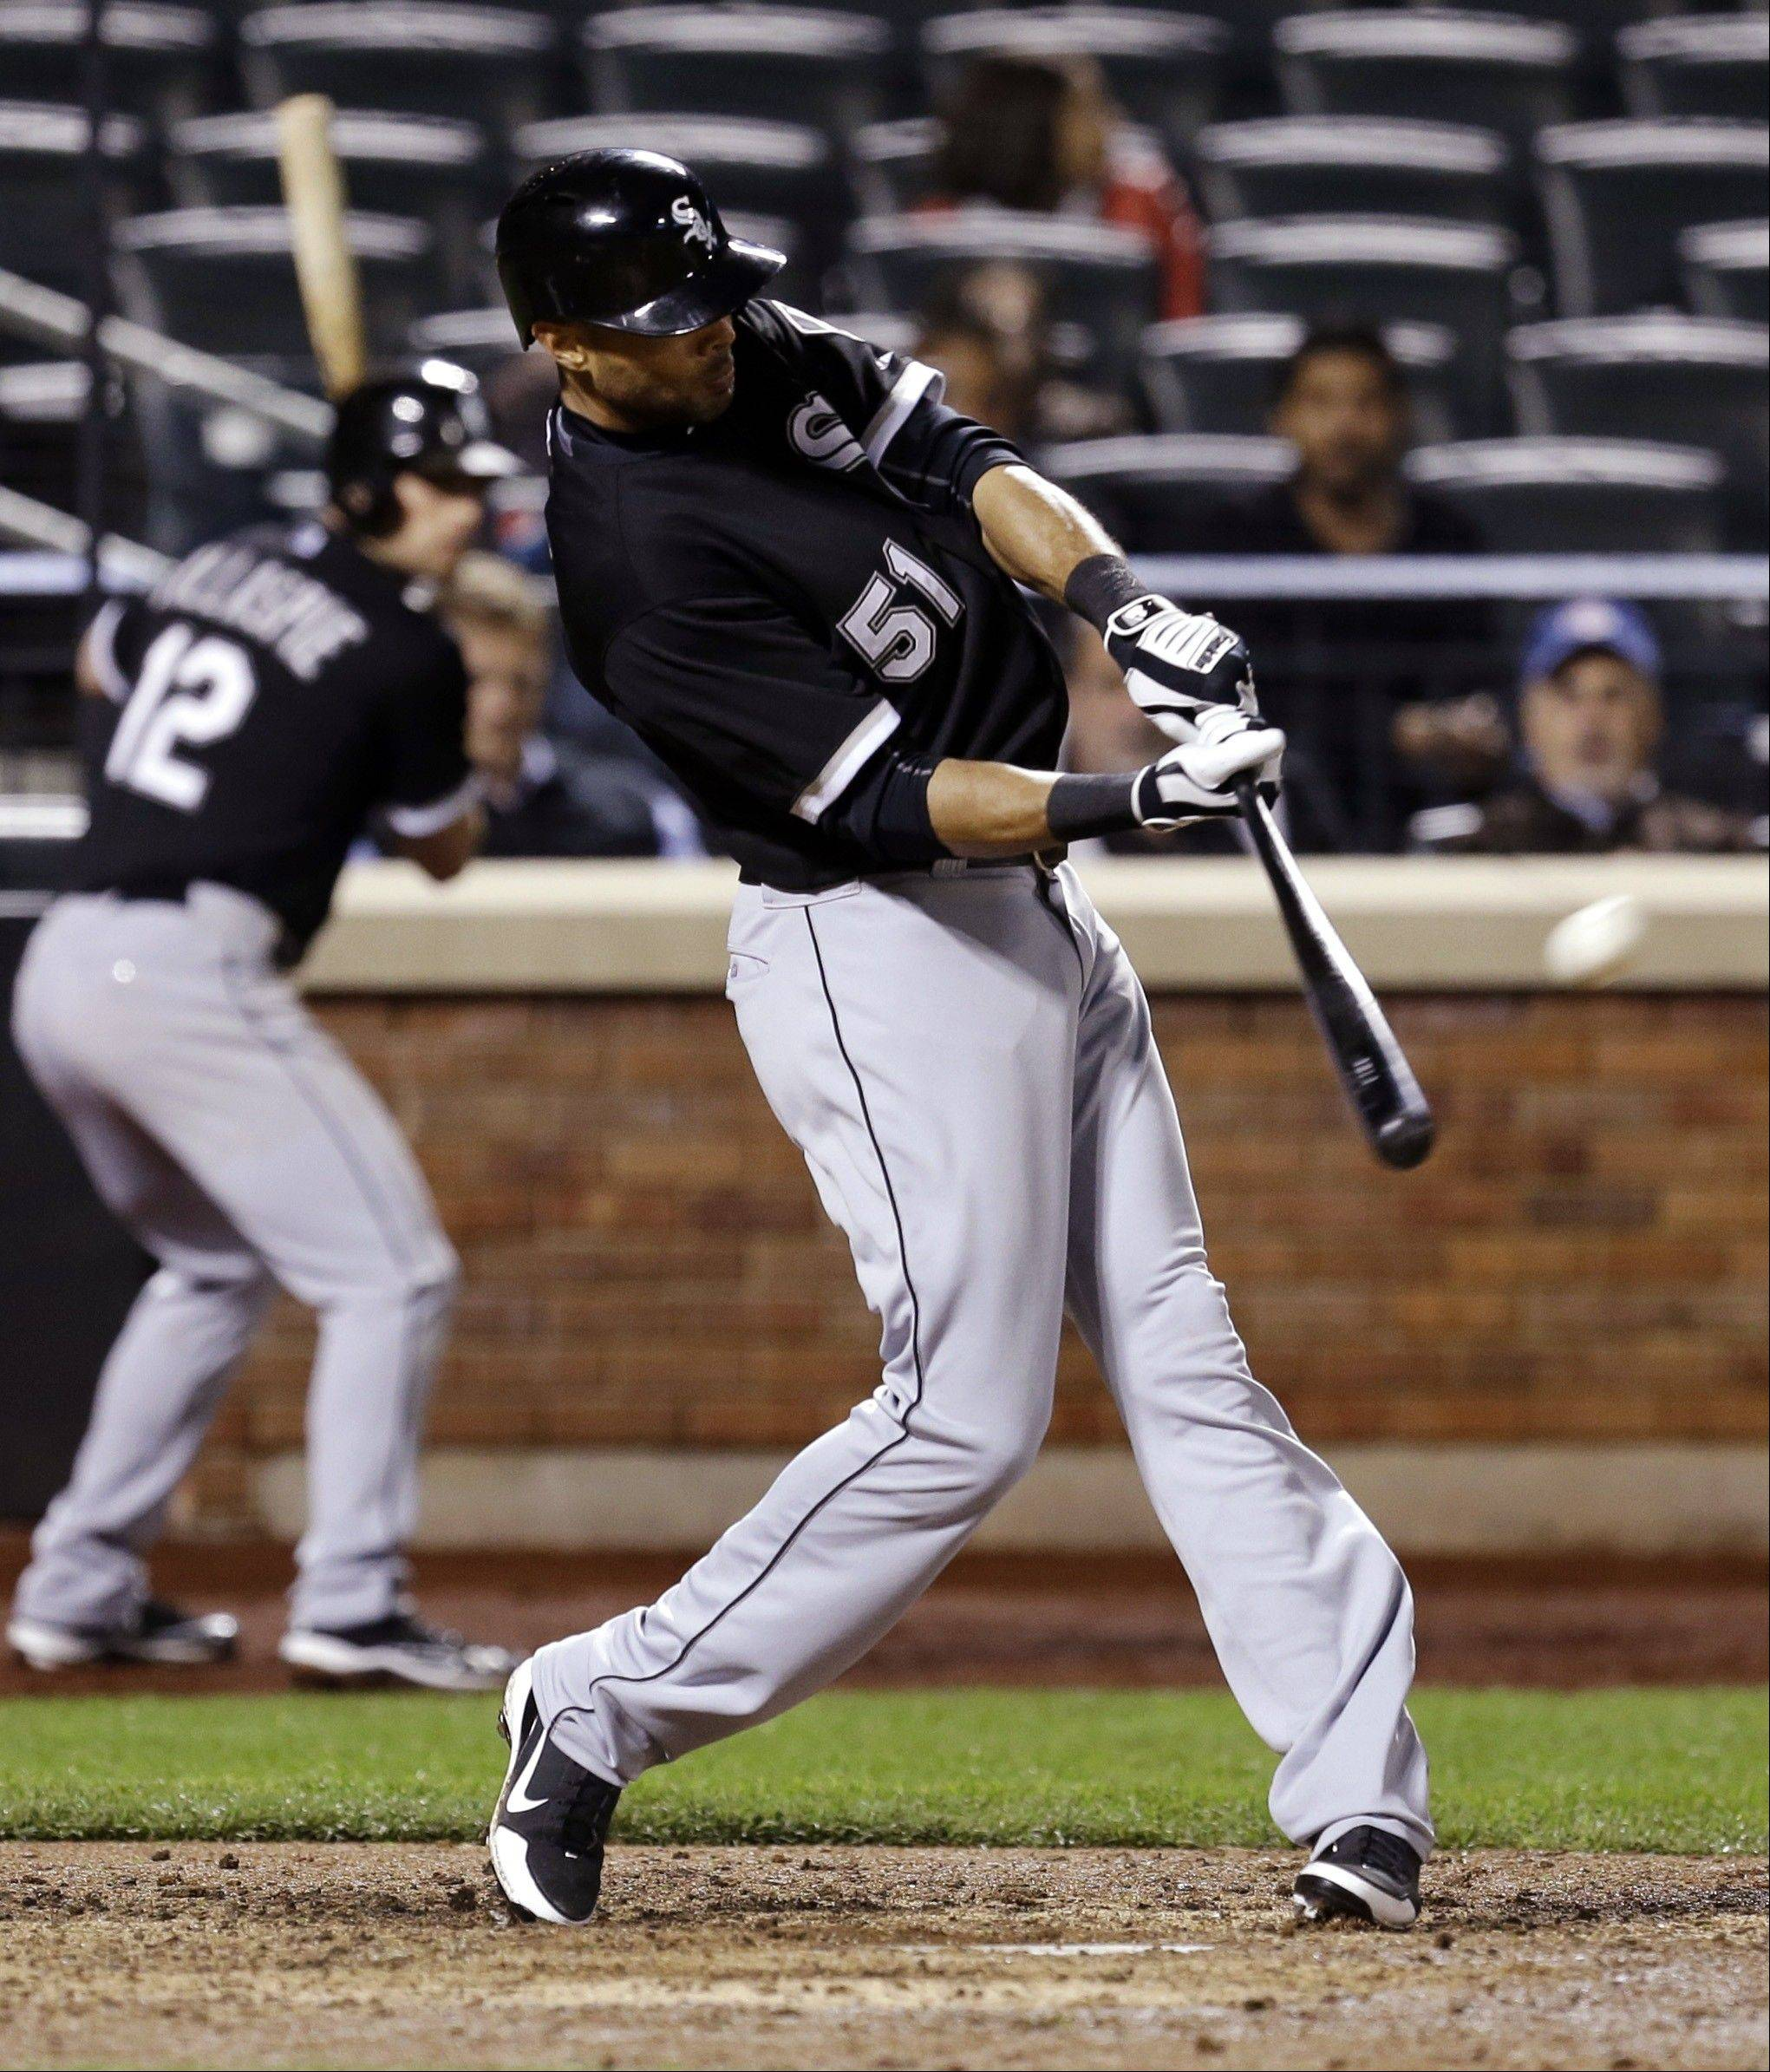 Alex Rios hits a solo home run during the ninth inning of a baseball game against the New York Mets at Citi Field, Wednesday, May 8, 2013, in New York. The White Sox won 6-3.